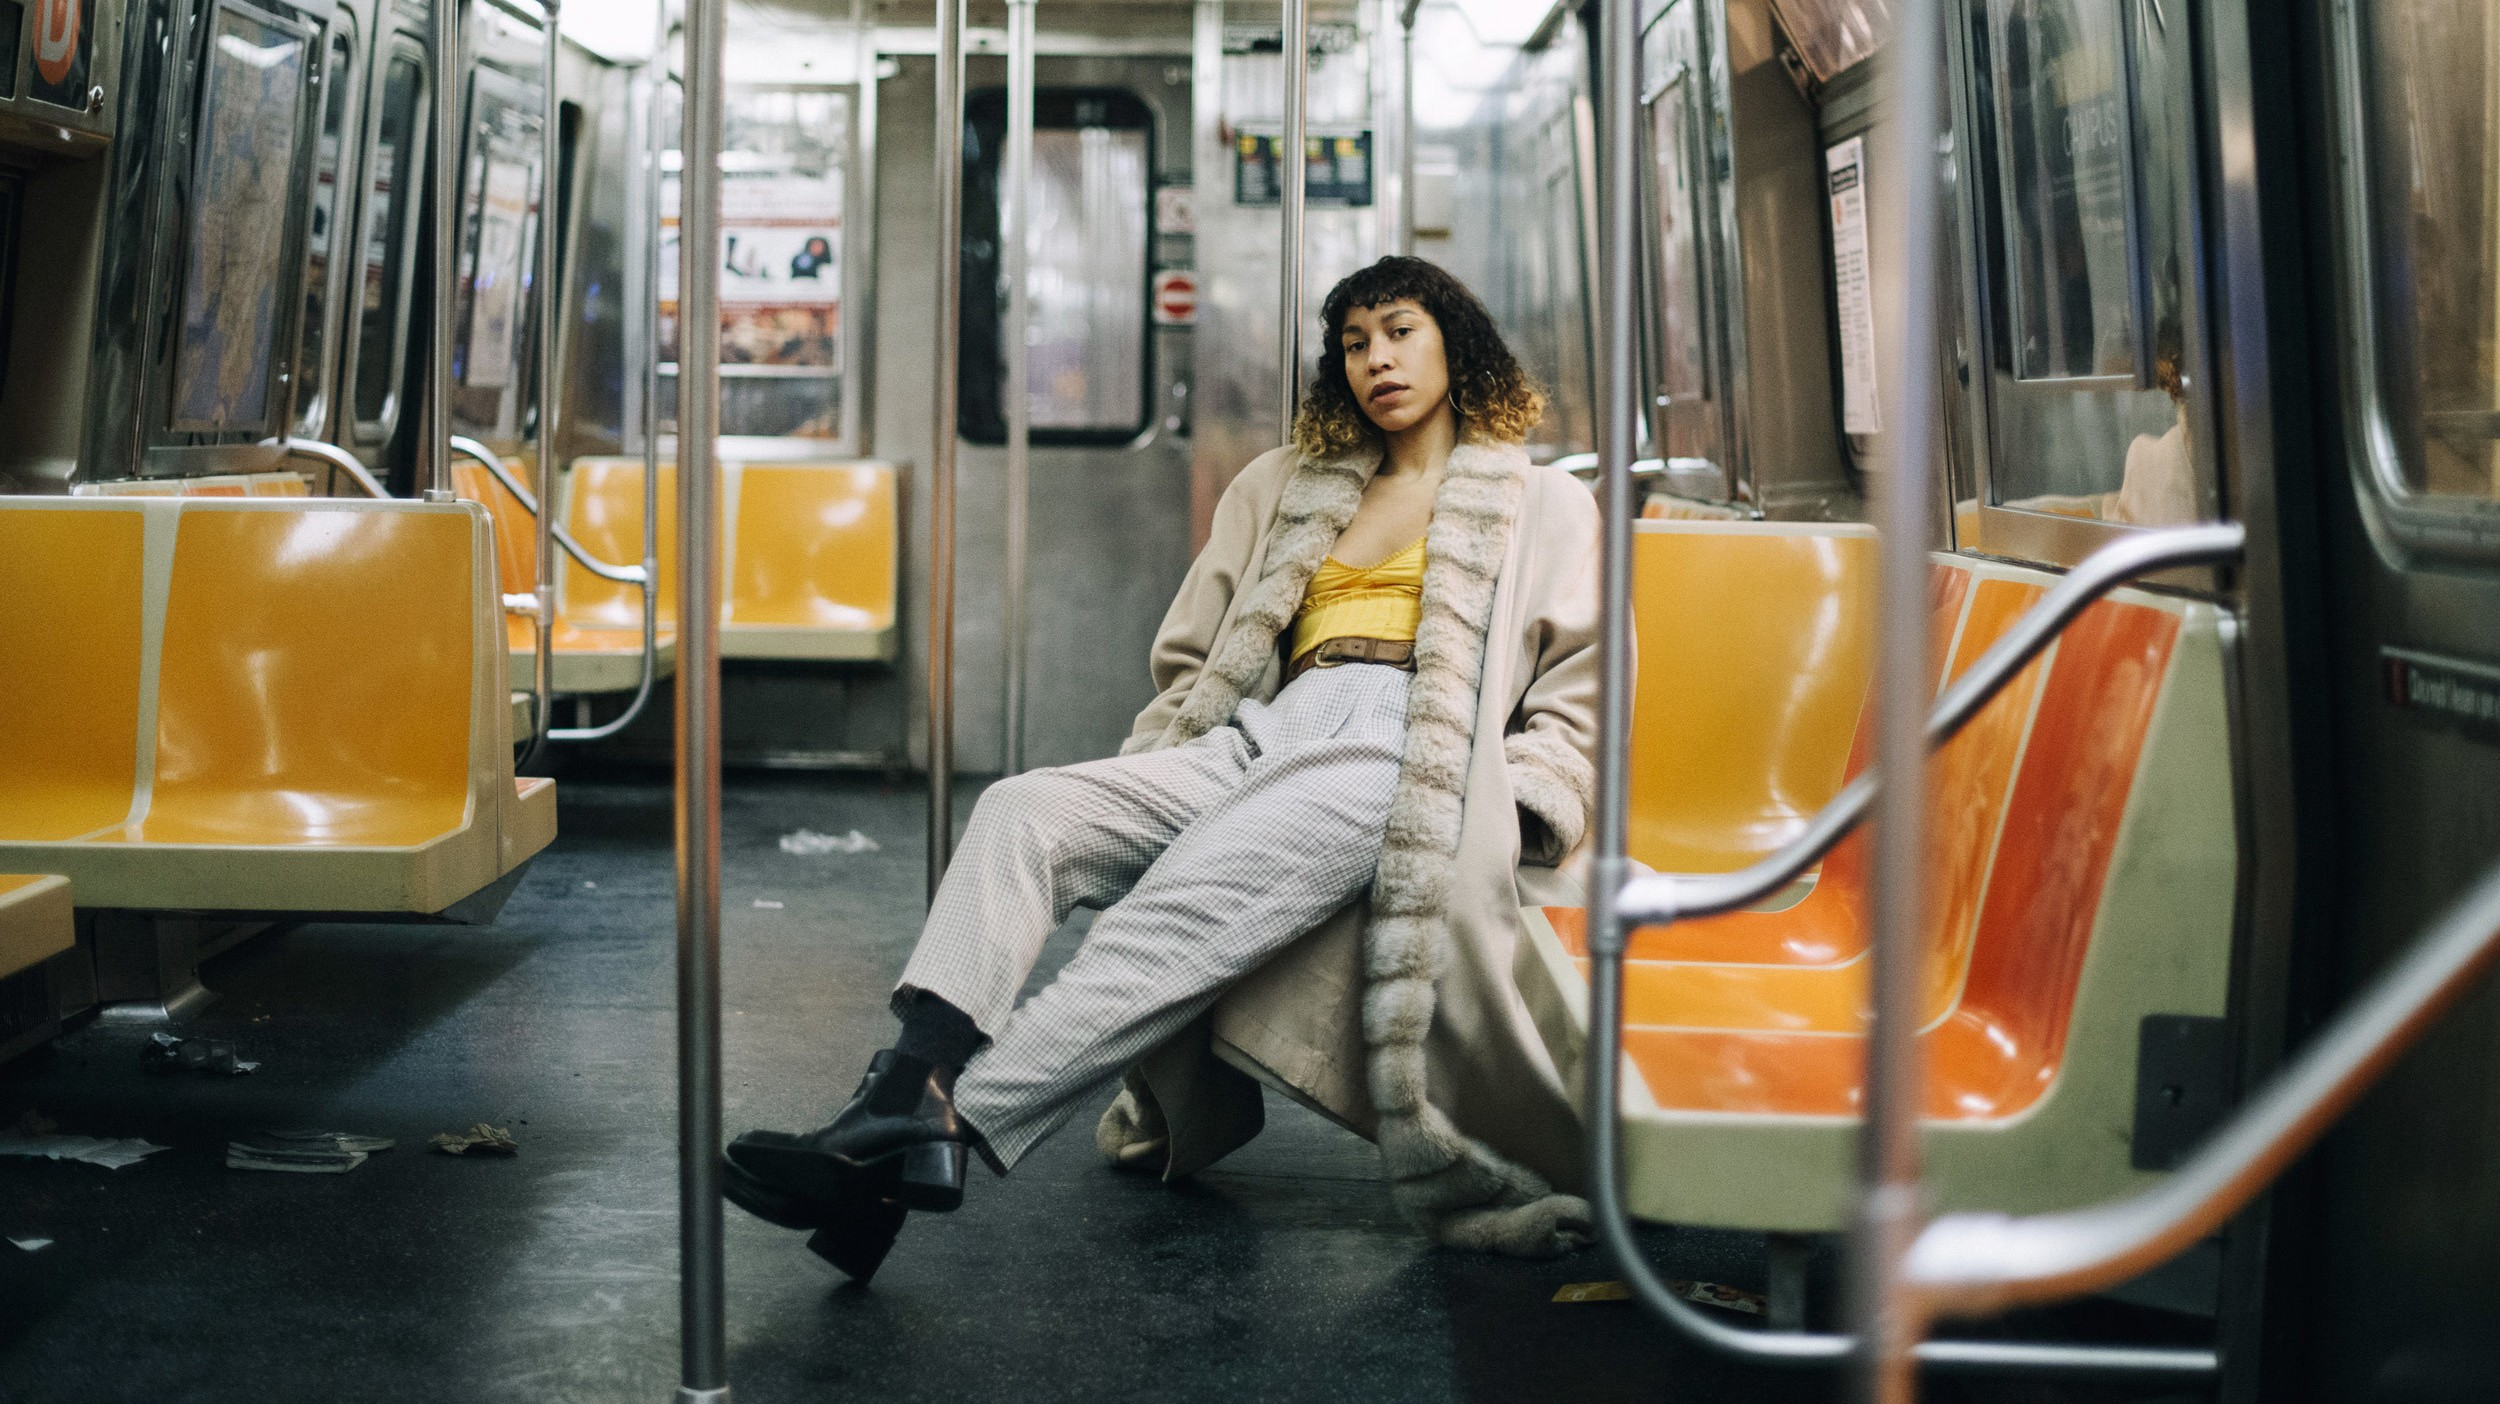 charlotte dos santos: music to... morning commute